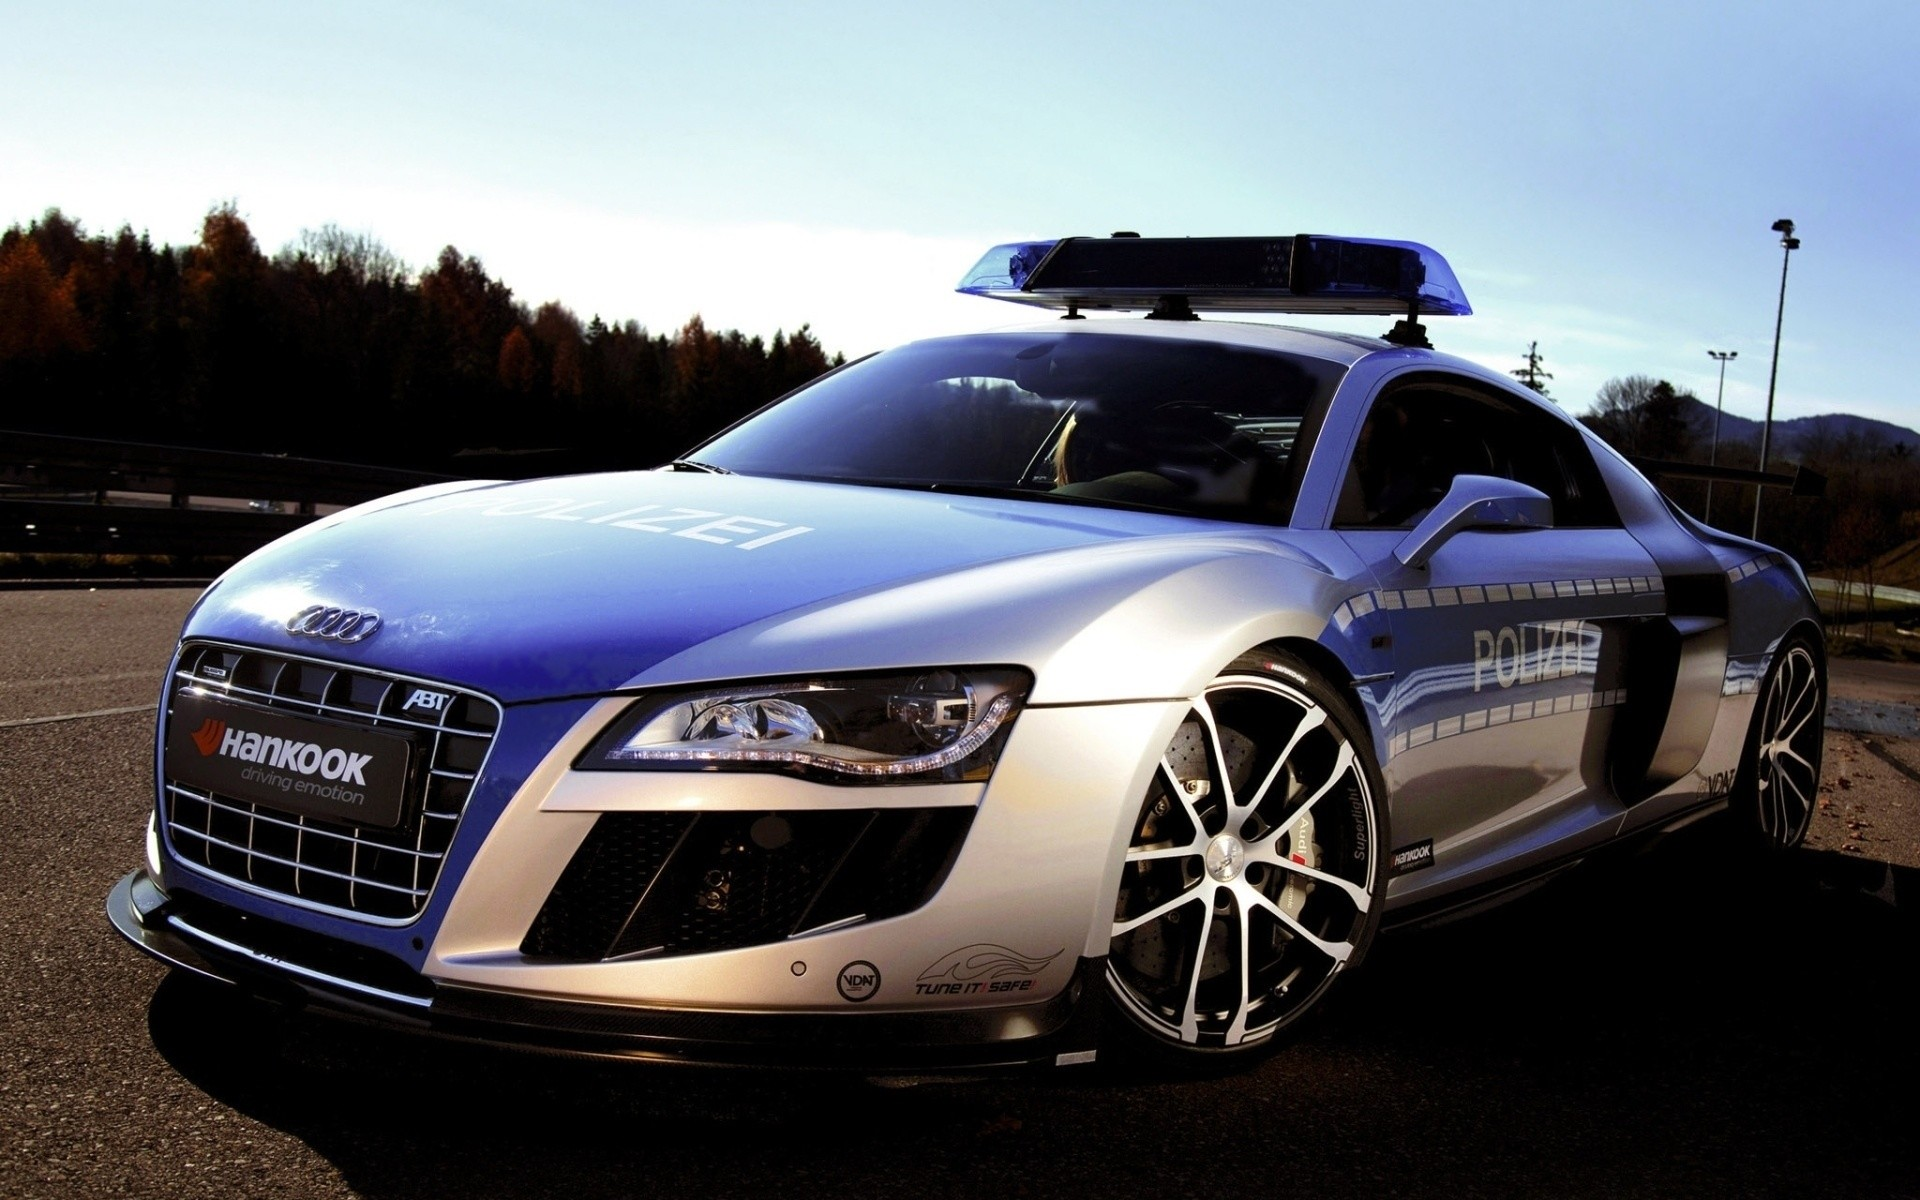 f8 police car car Wallpaper, Car Wallpaper, Background, Desktop Car .